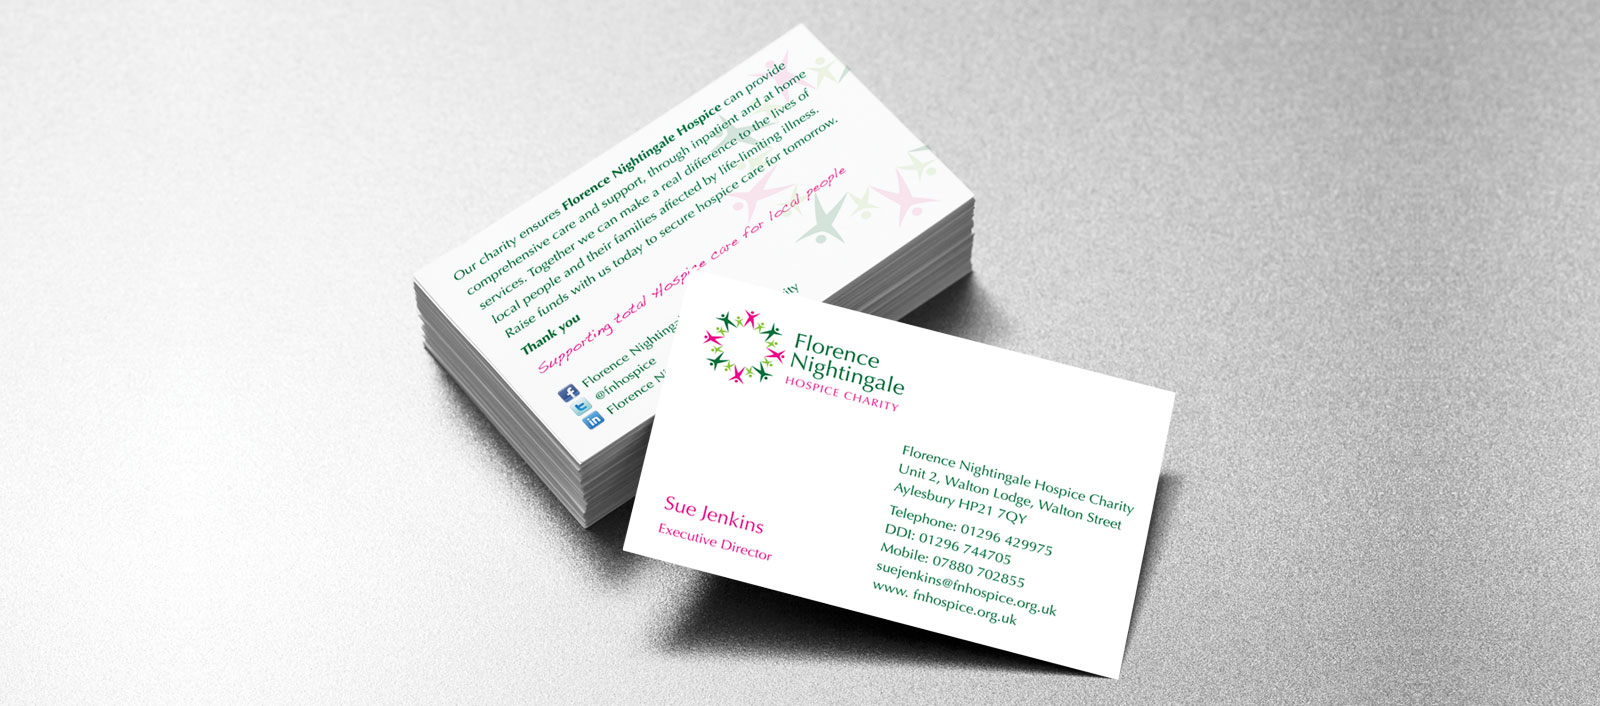 Florence Nightingale Hospice Charity Business Card Design | Holly ...